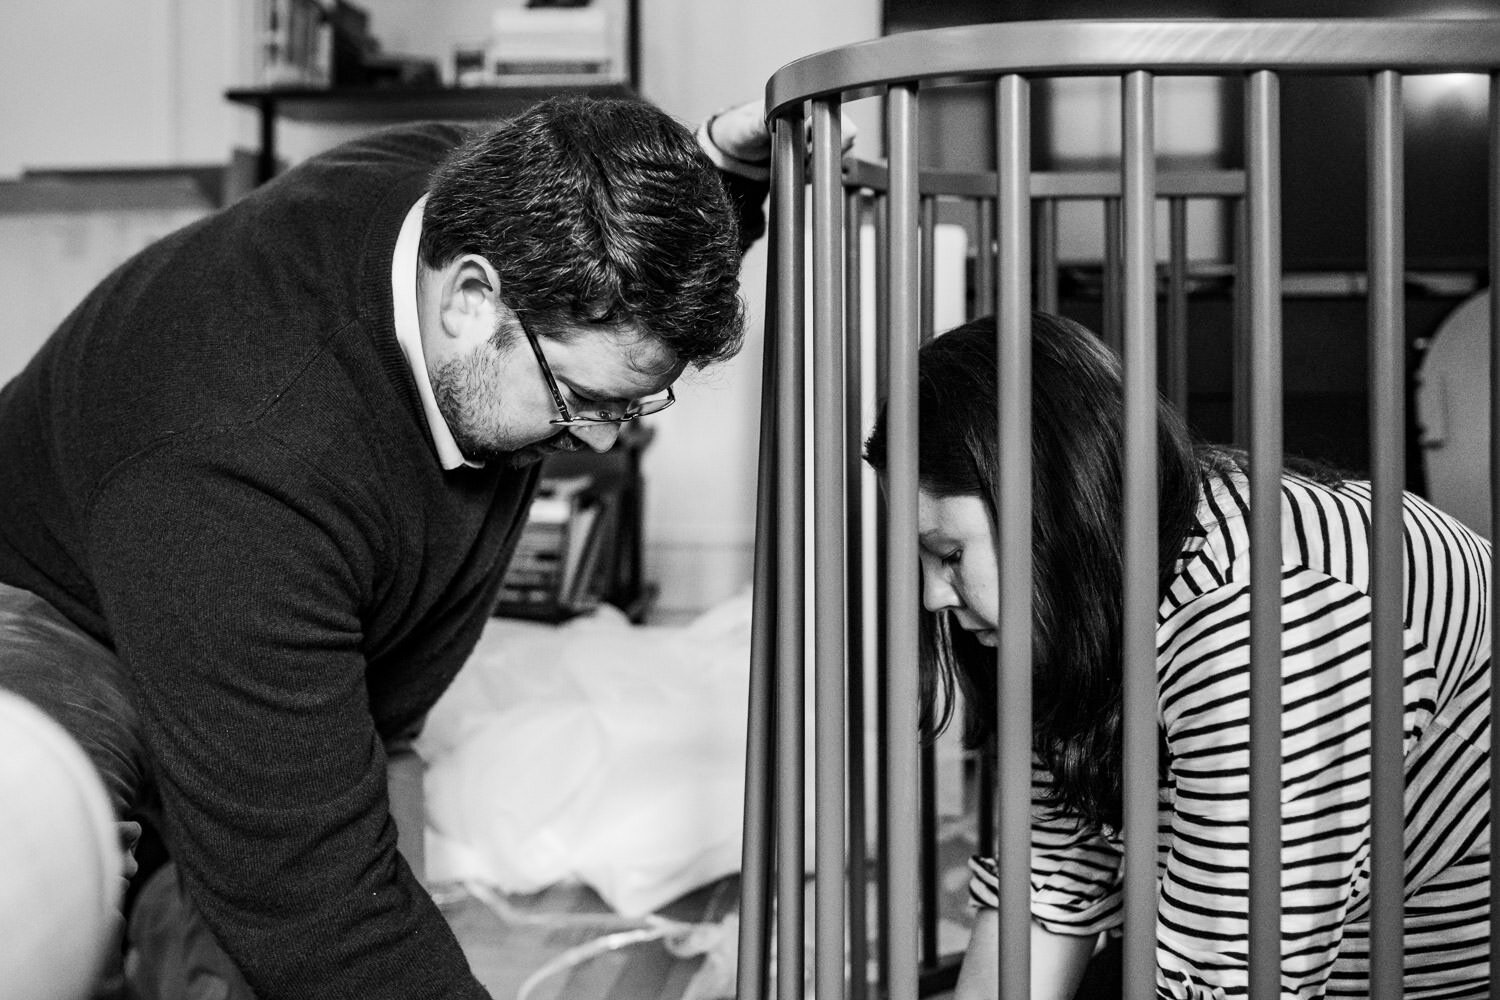 A couple puts together a crib.